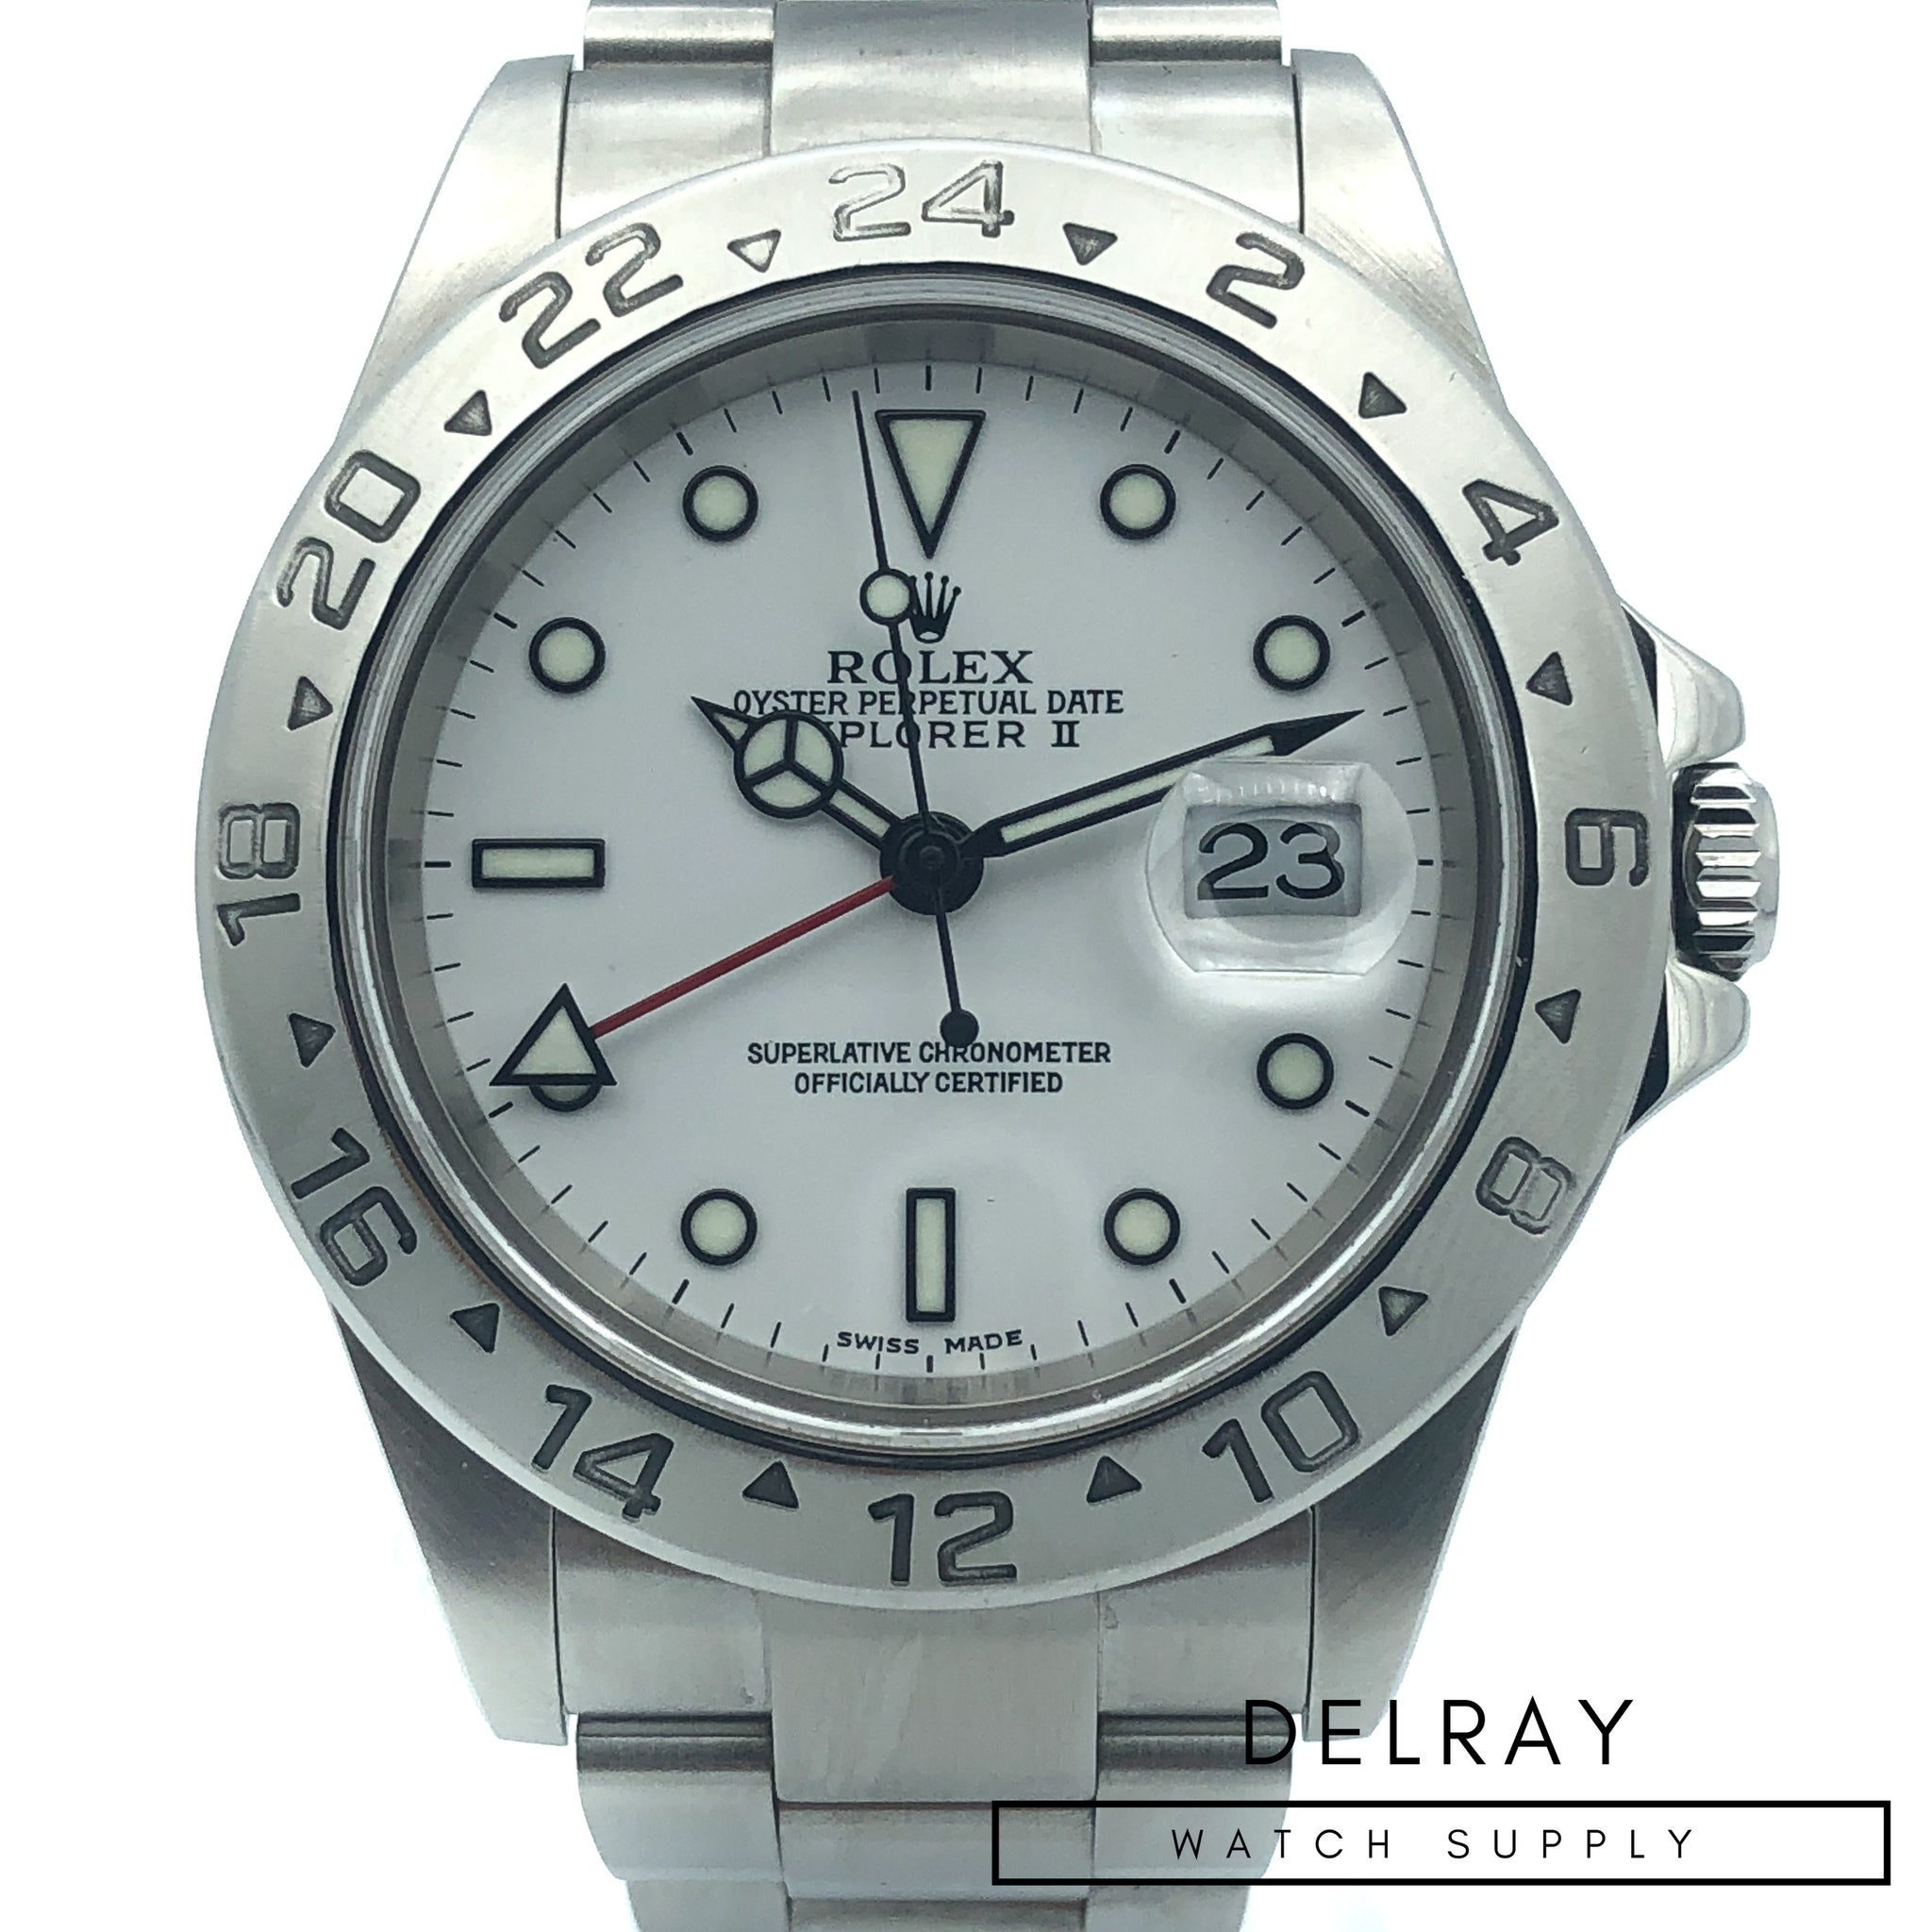 watchestobuy dress click more watches for the com explorer rolex on shop image detail